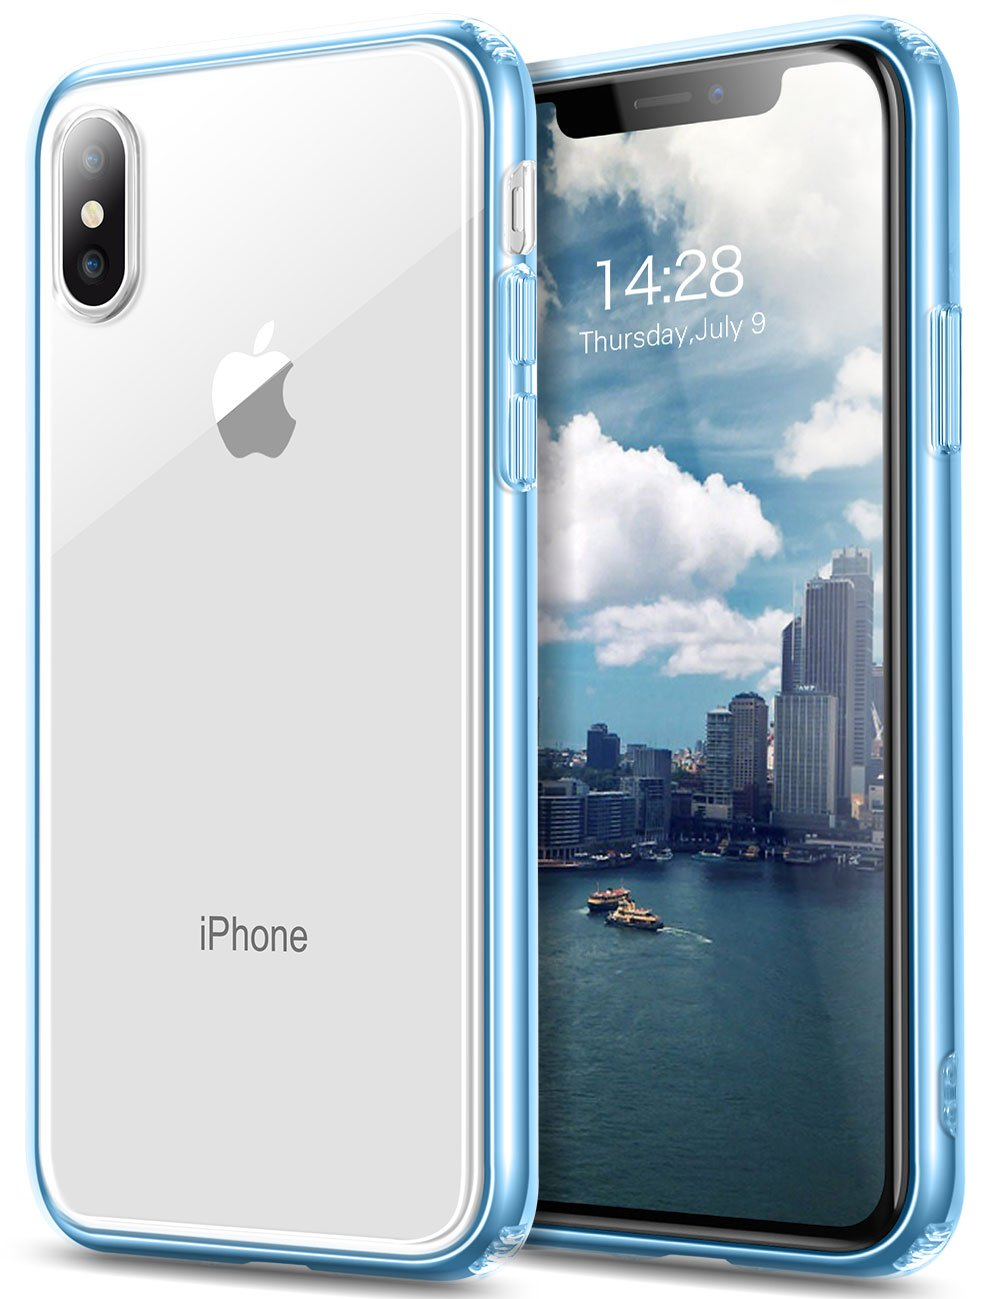 buy online 4ef62 feab7 iPhone X Case, Sankmi iPhone 10 Case, Clear Flexible TPU Shockproof Slim  Lightweight Cover Scratch Resistant Transparent Back Cushion Protection  Case ...